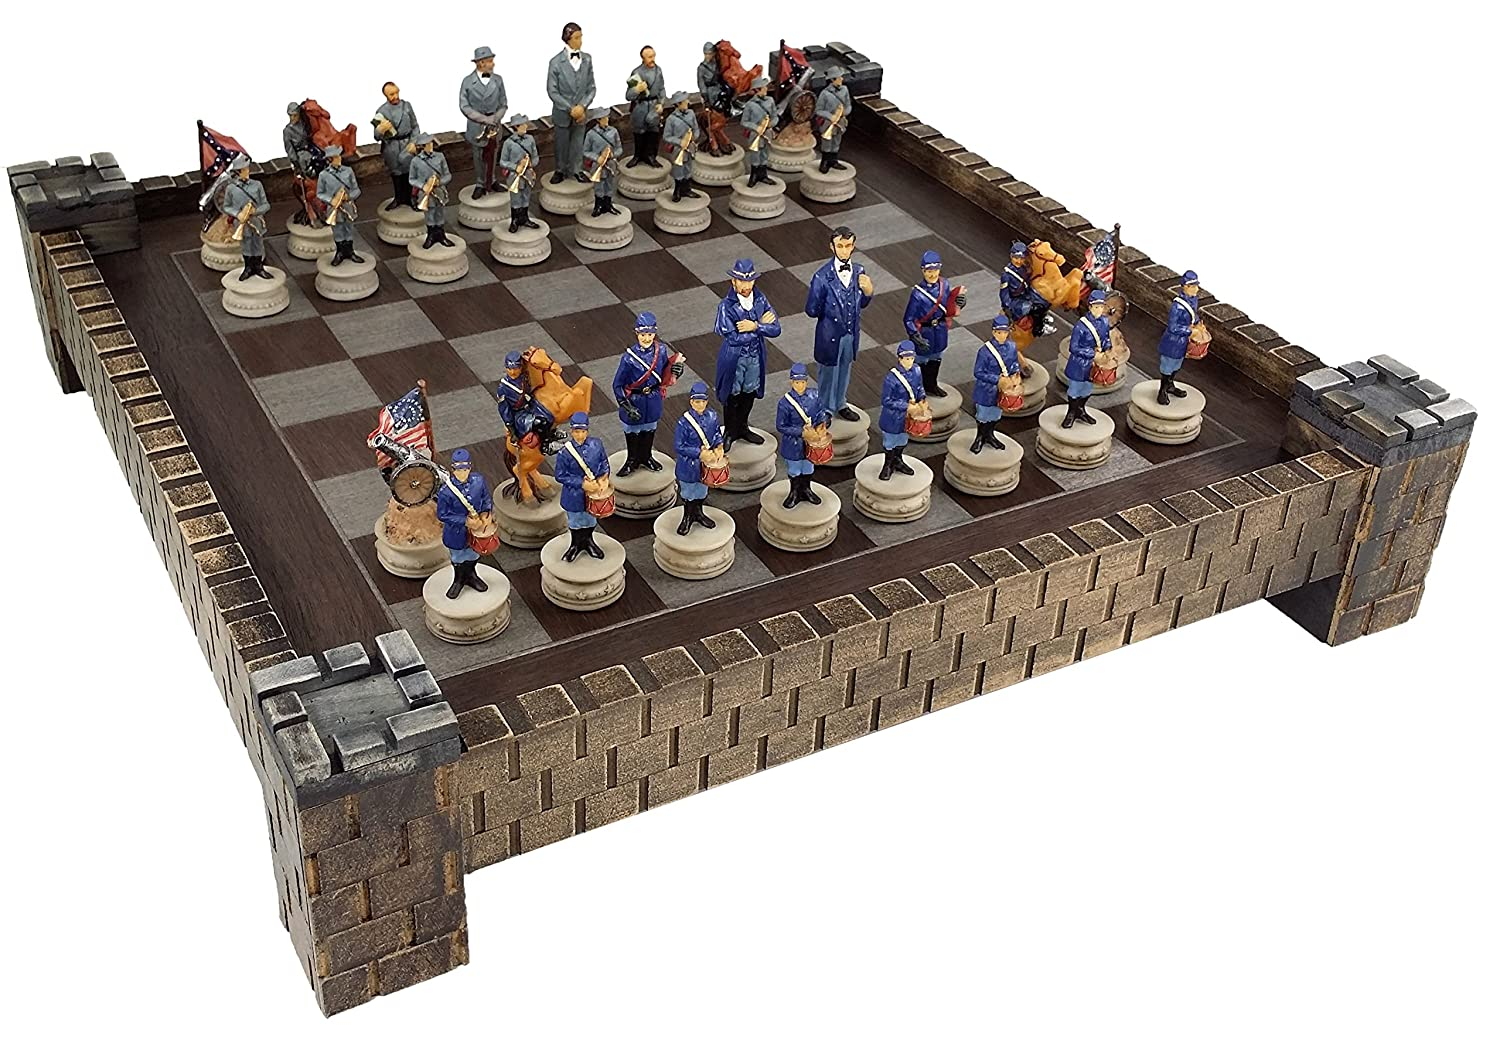 100 decorative chess set jonathan adlerwhite cabana white cabana how to make a macgyver - Ornate chess sets ...